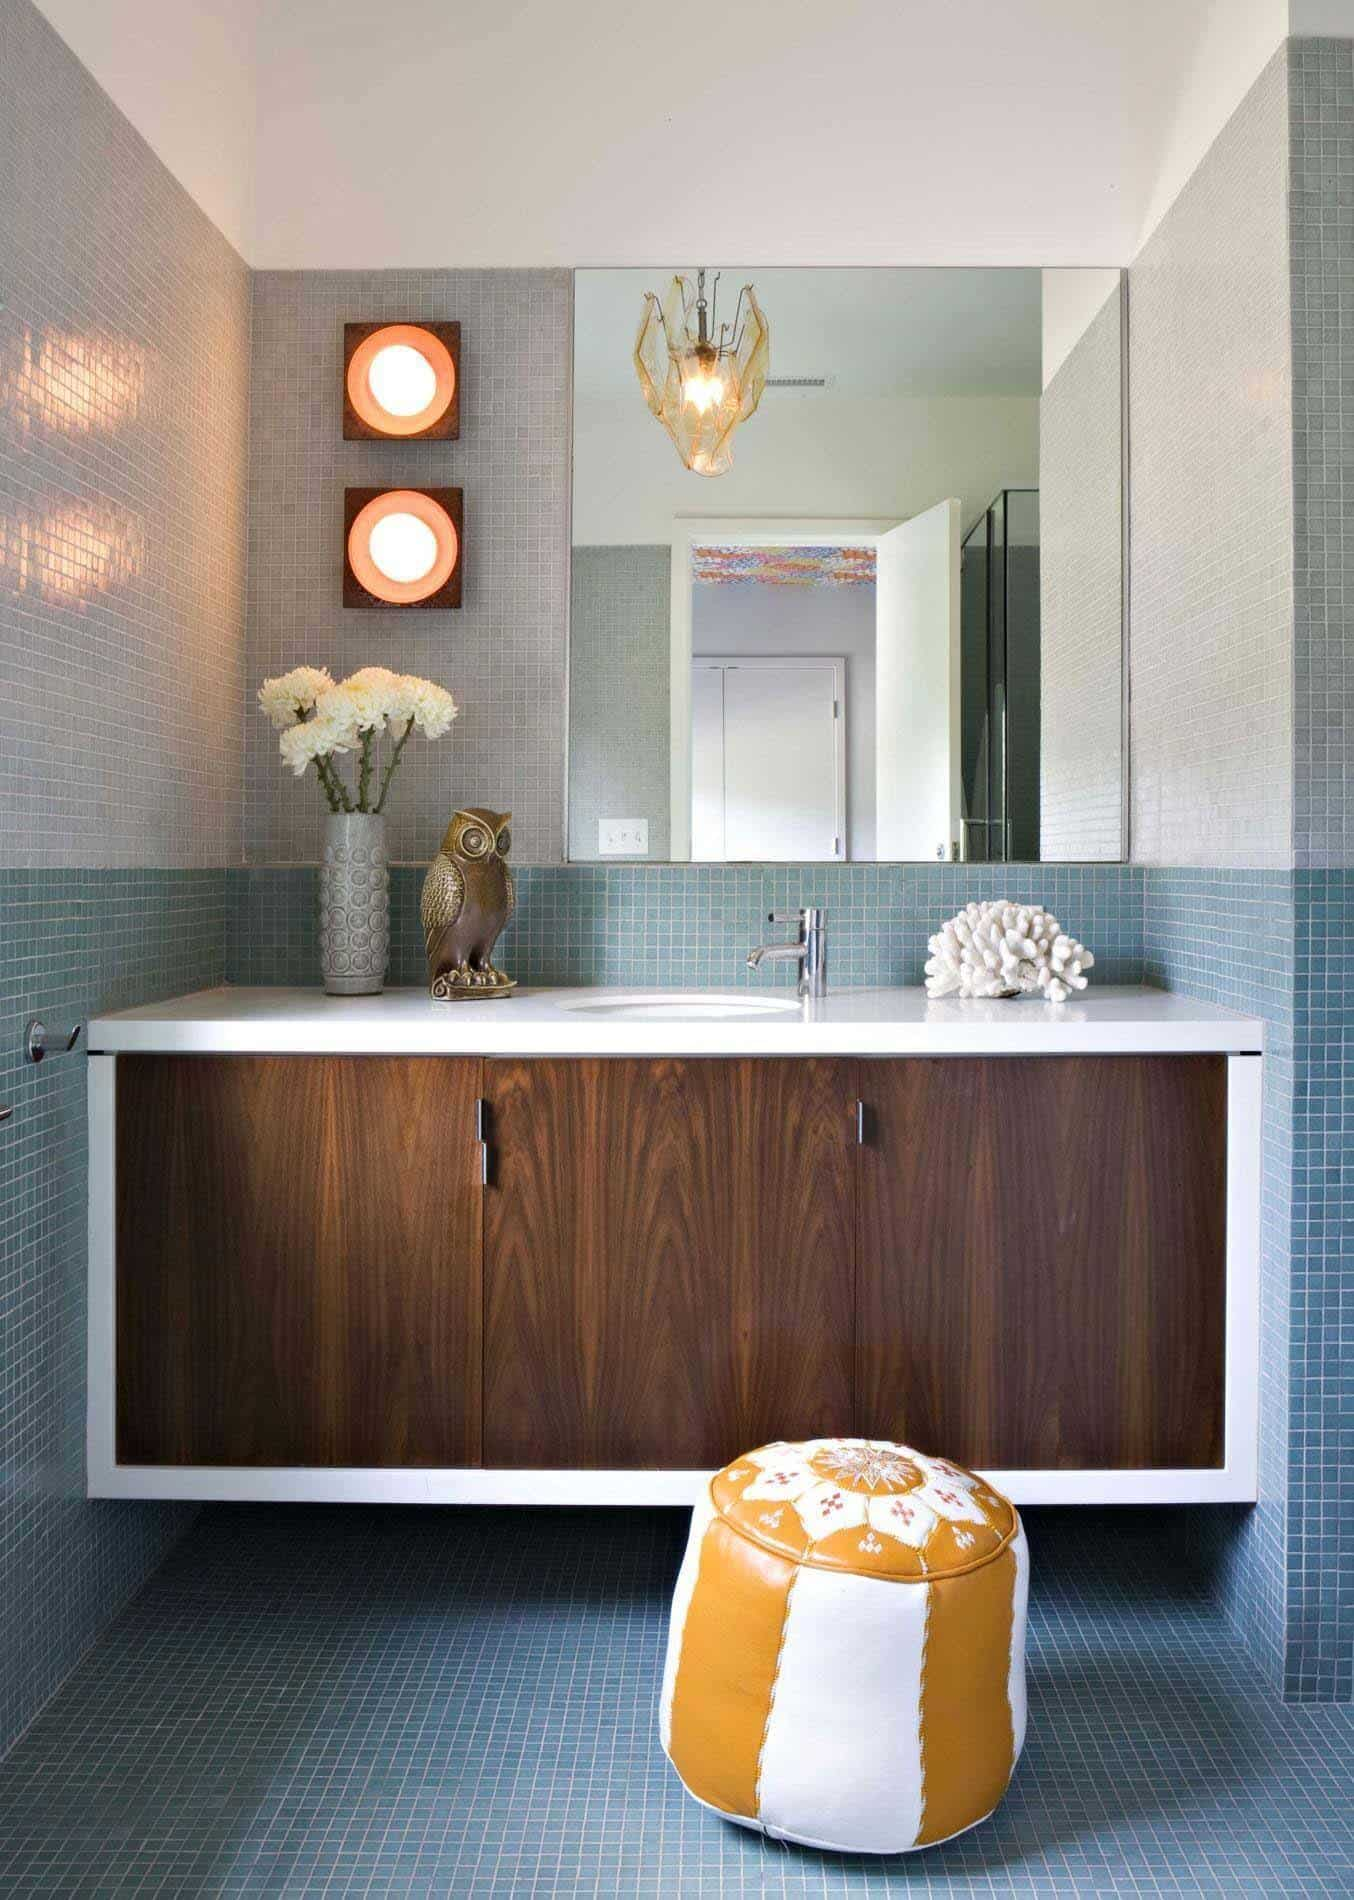 Image of: 30 Awesome Mid Century Modern Bathroom Ideas You Should See This Year